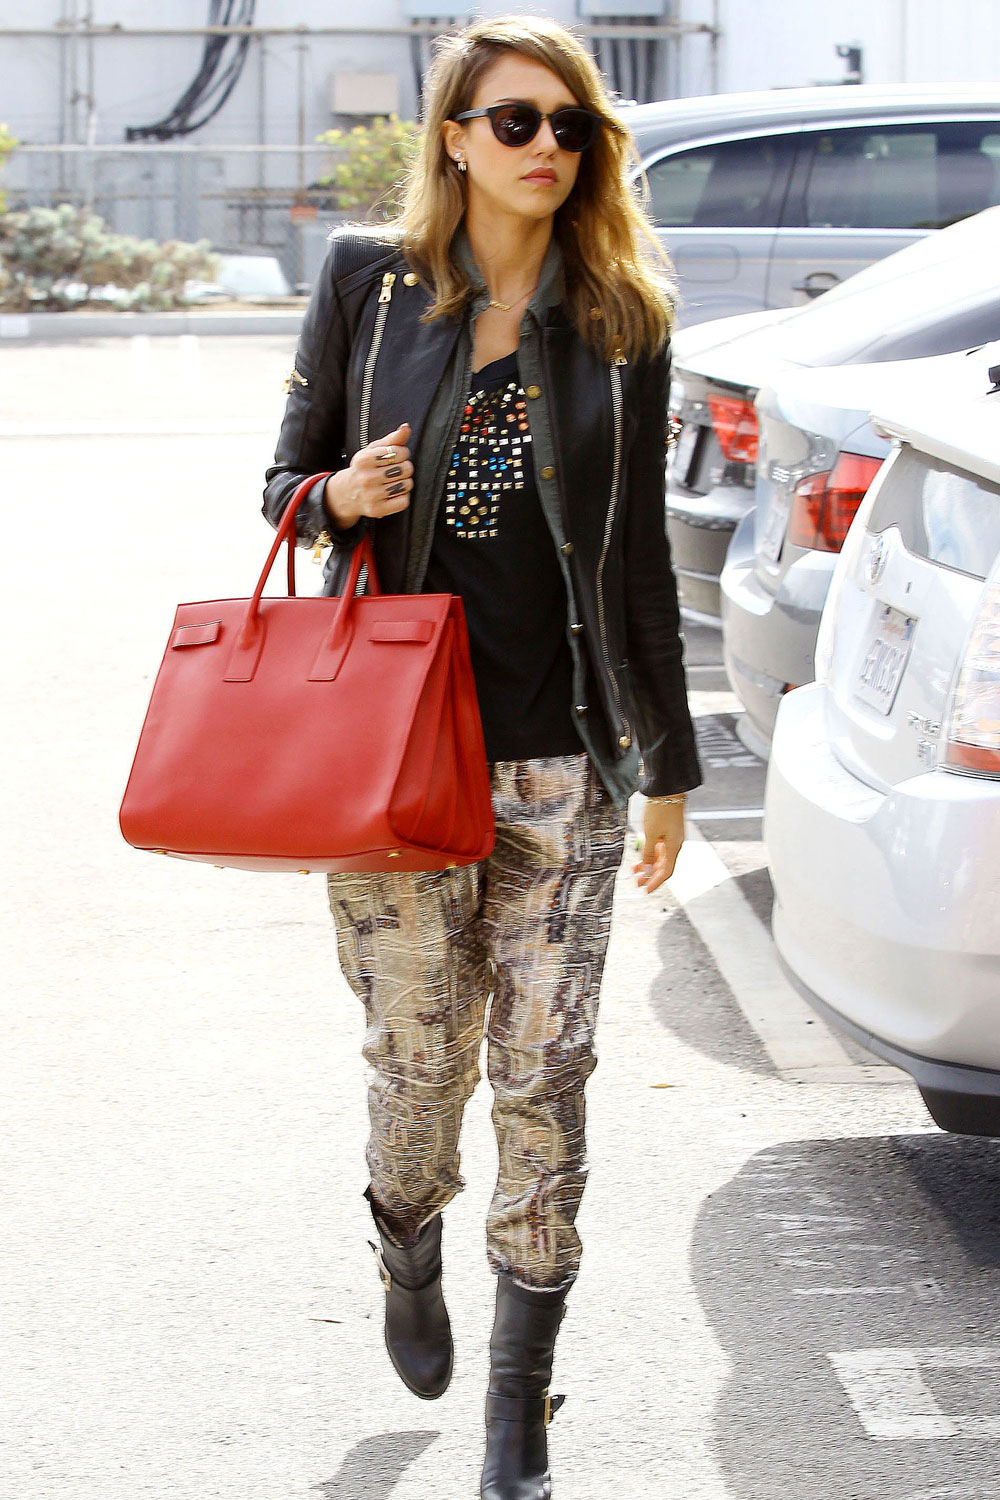 Off-Duty Celebrity Style: Casual Looks We Love